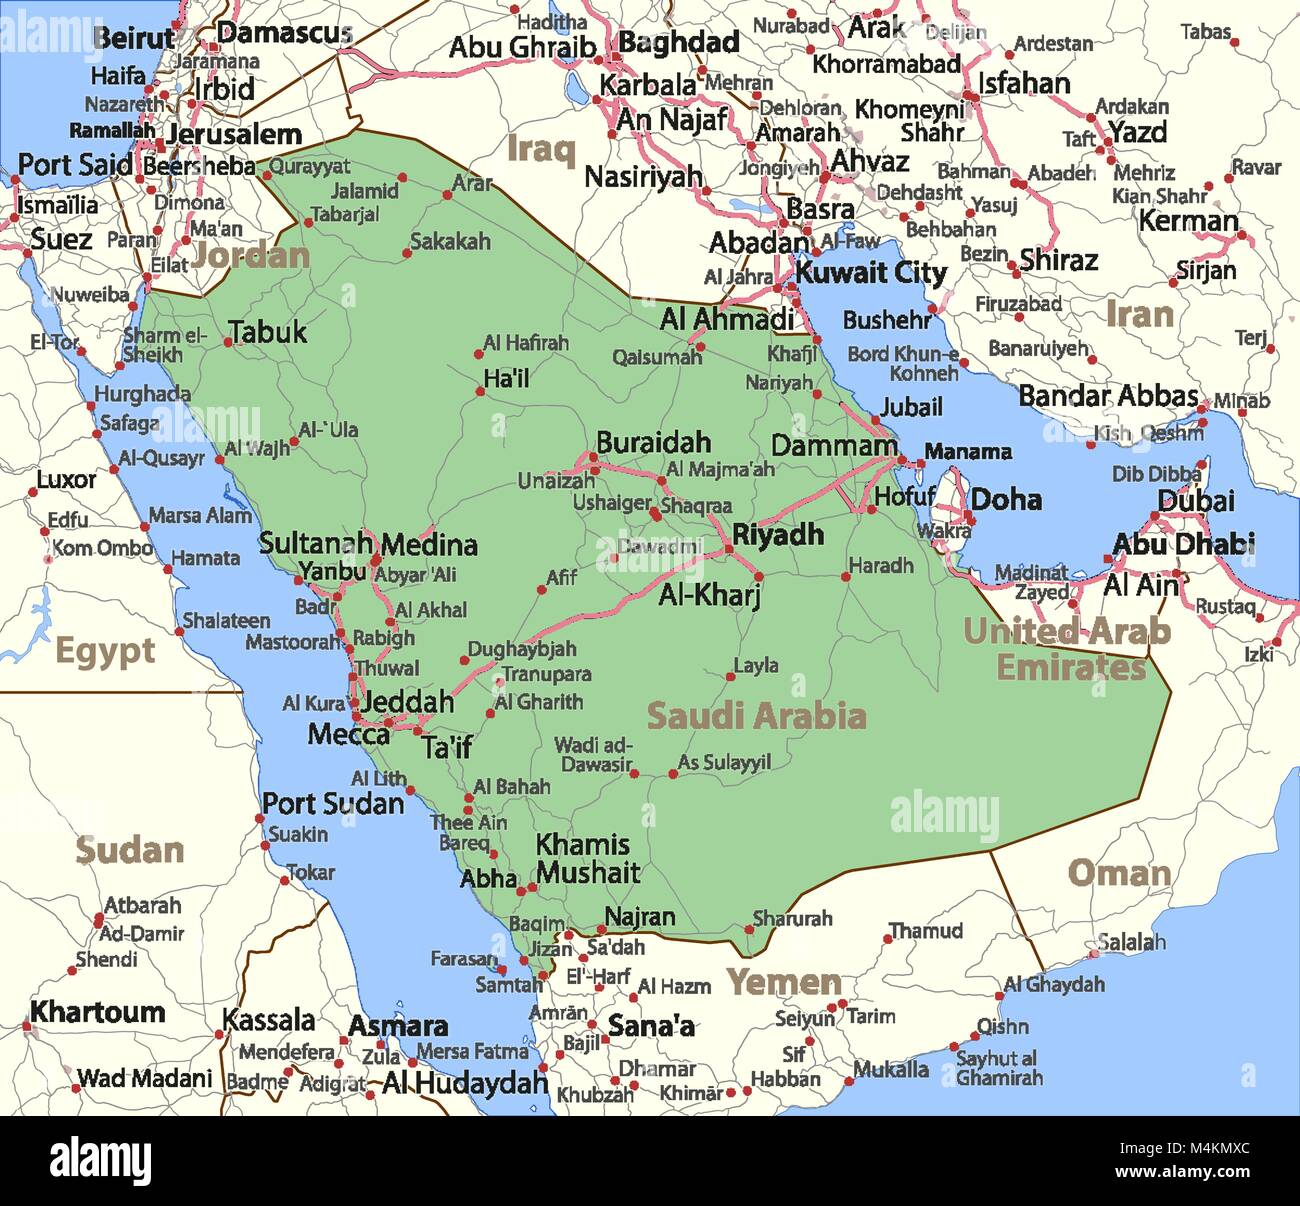 Map of saudi arabia shows country borders urban areas place names map of saudi arabia shows country borders urban areas place names and roads labels in english where possible projection mercator gumiabroncs Choice Image